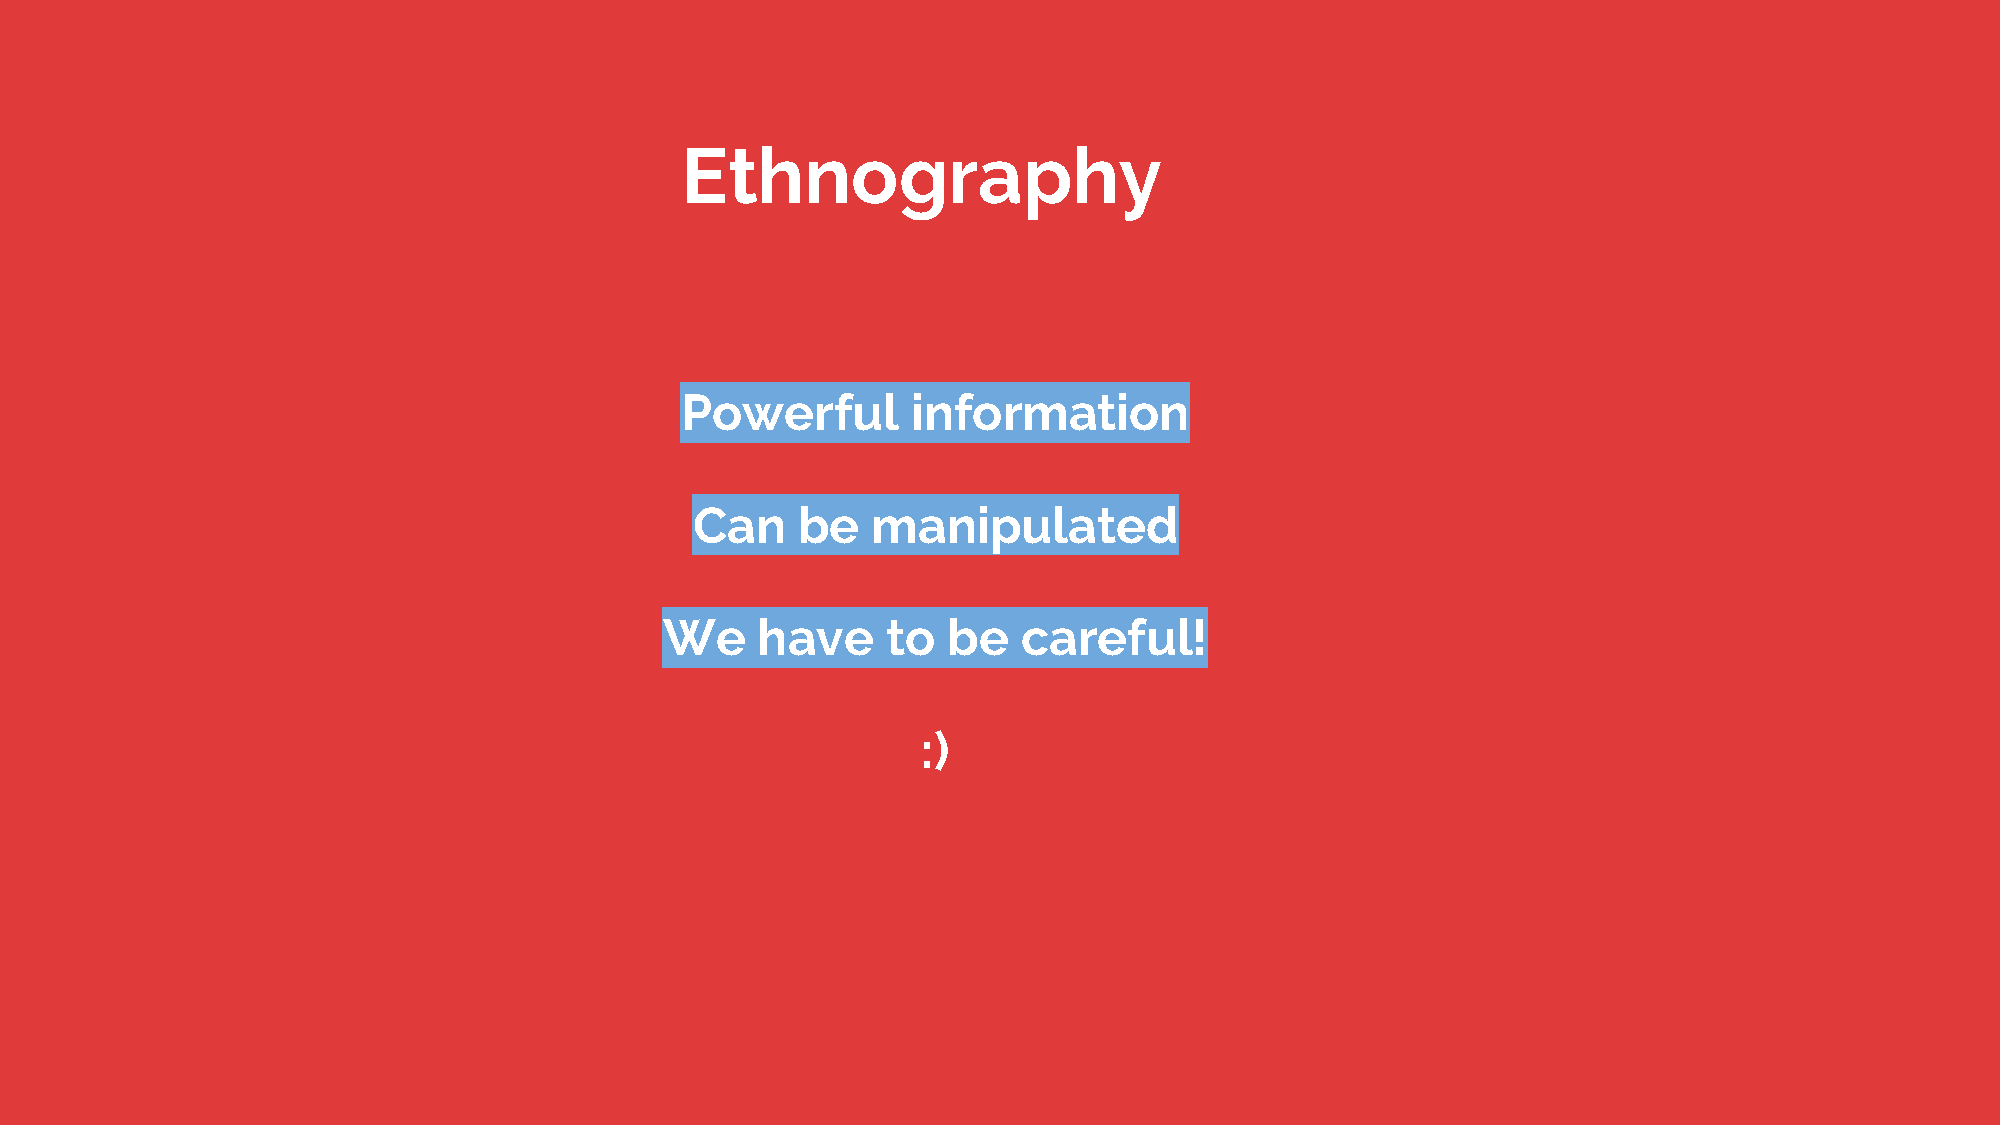 Ethnography_Page_16.png